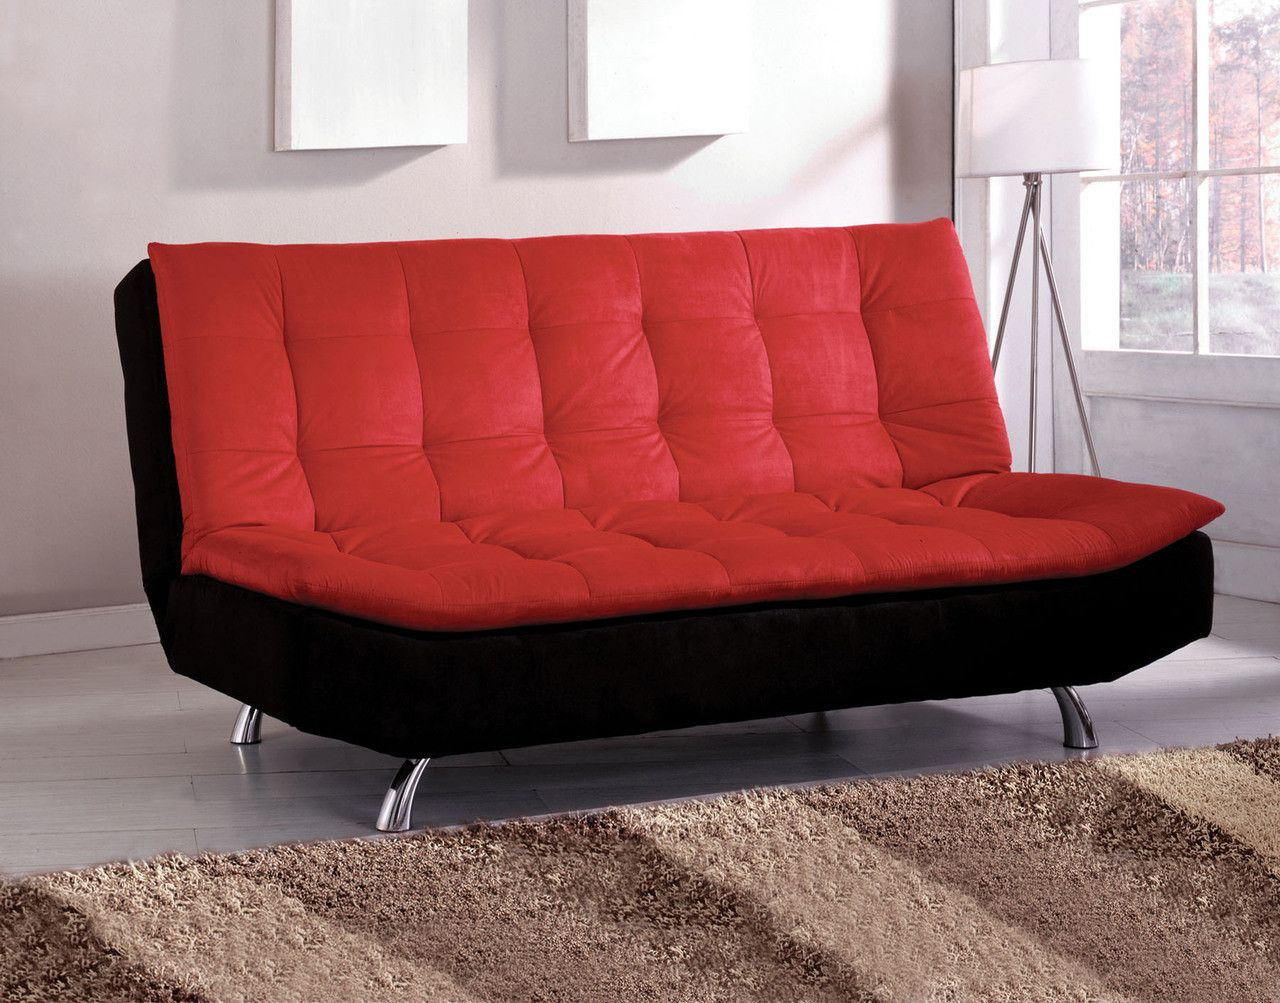 Malibu Futon Sofa Cm2574 Contemporary Style Pillow Top Converts Into Bed Chrome Legs Red Black Microfiber Seat Enjoy The Comfort Of A Built In